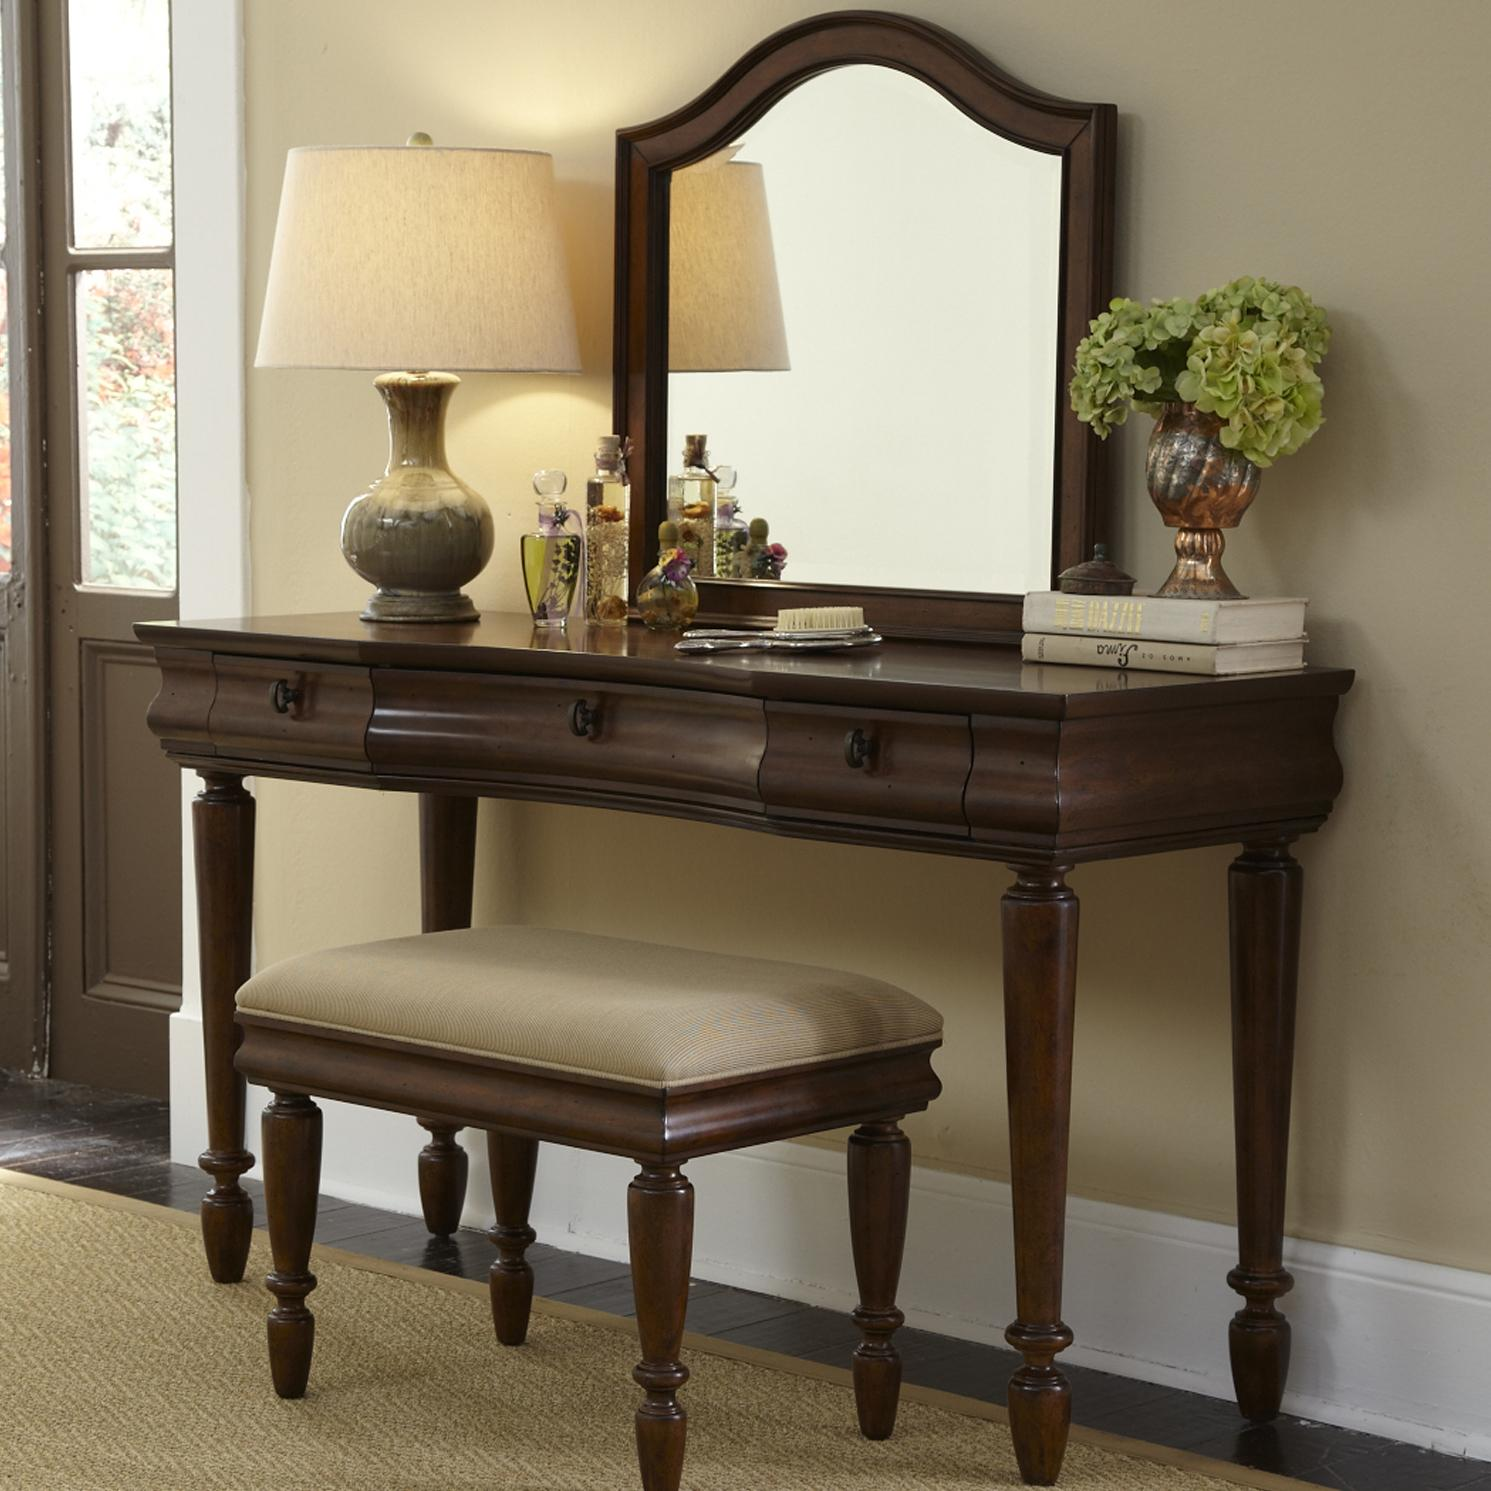 Vanity set with turned legs by liberty furniture wolf and gardiner wolf furniture for Bedroom furniture vanity sets